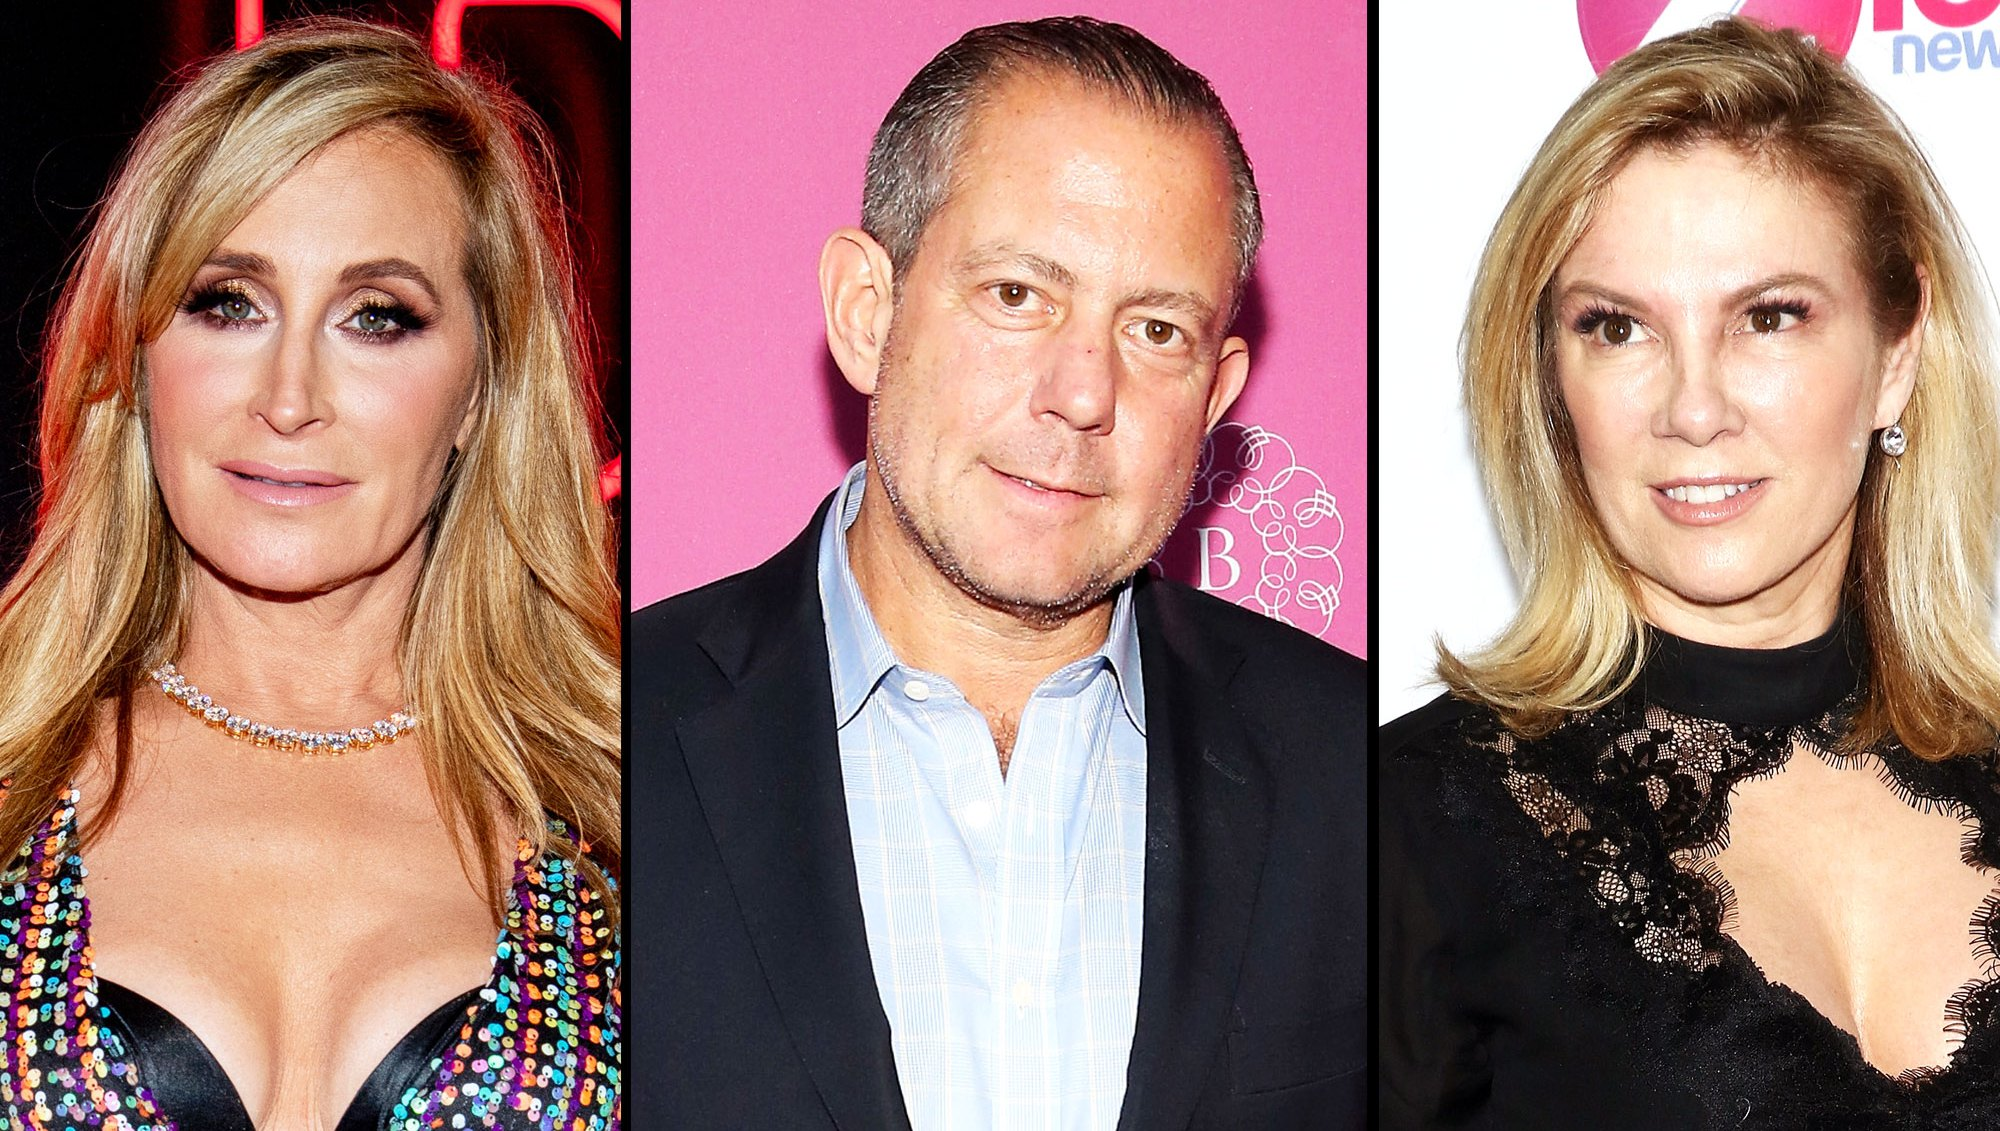 Sonja Morgan Says She Was 'Not Happy' With Harry Dubin After Ramona Singer Kiss Photos Surfaced